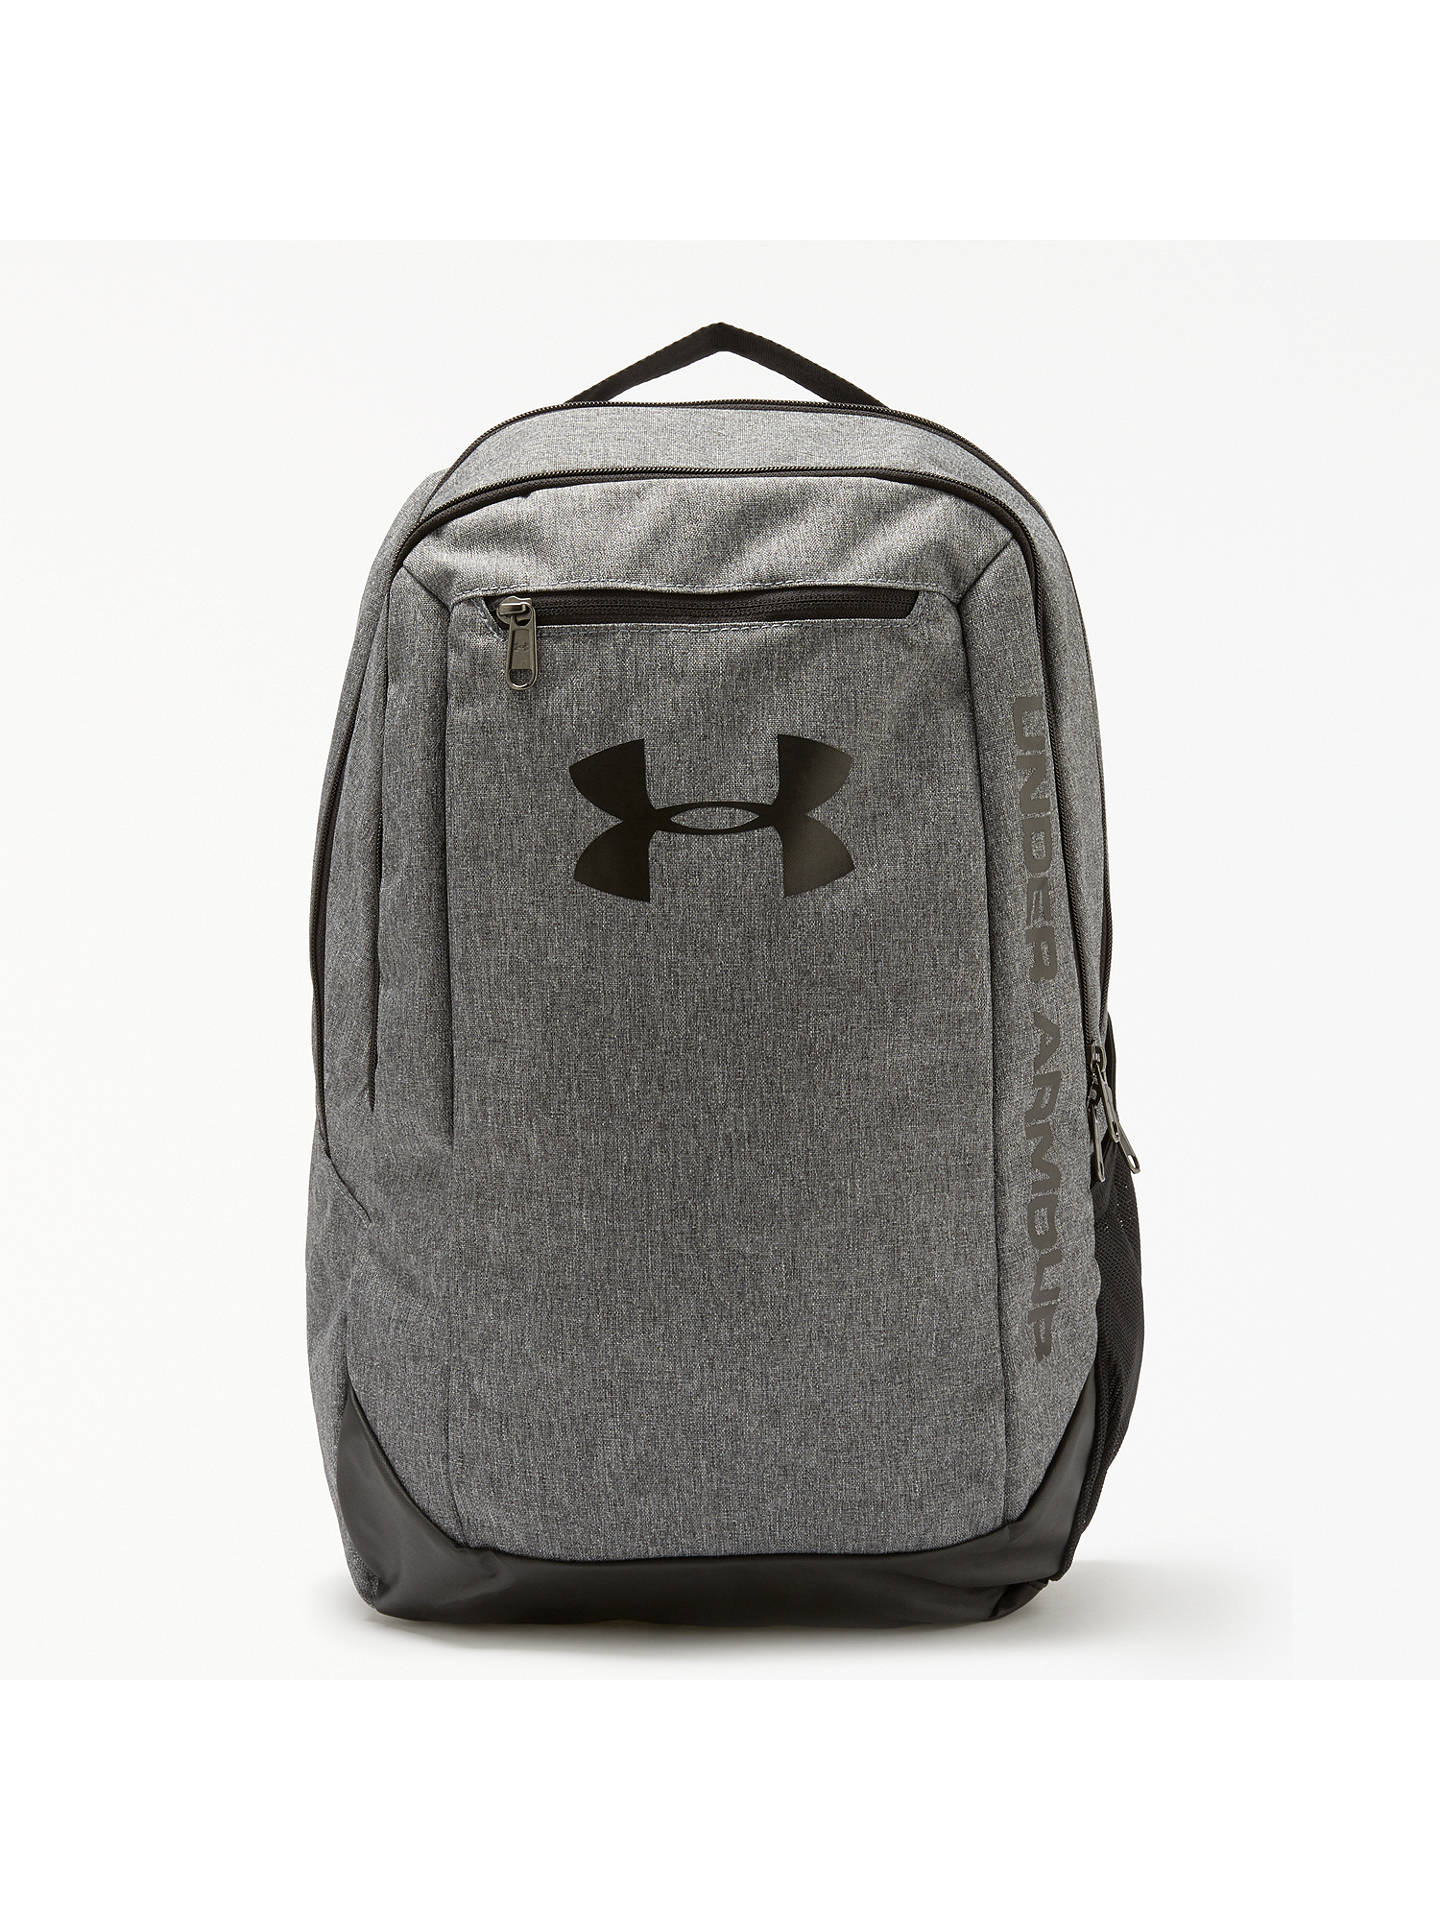 10373c3cbd31 Buy Under Armour Hustle LDWR Backpack